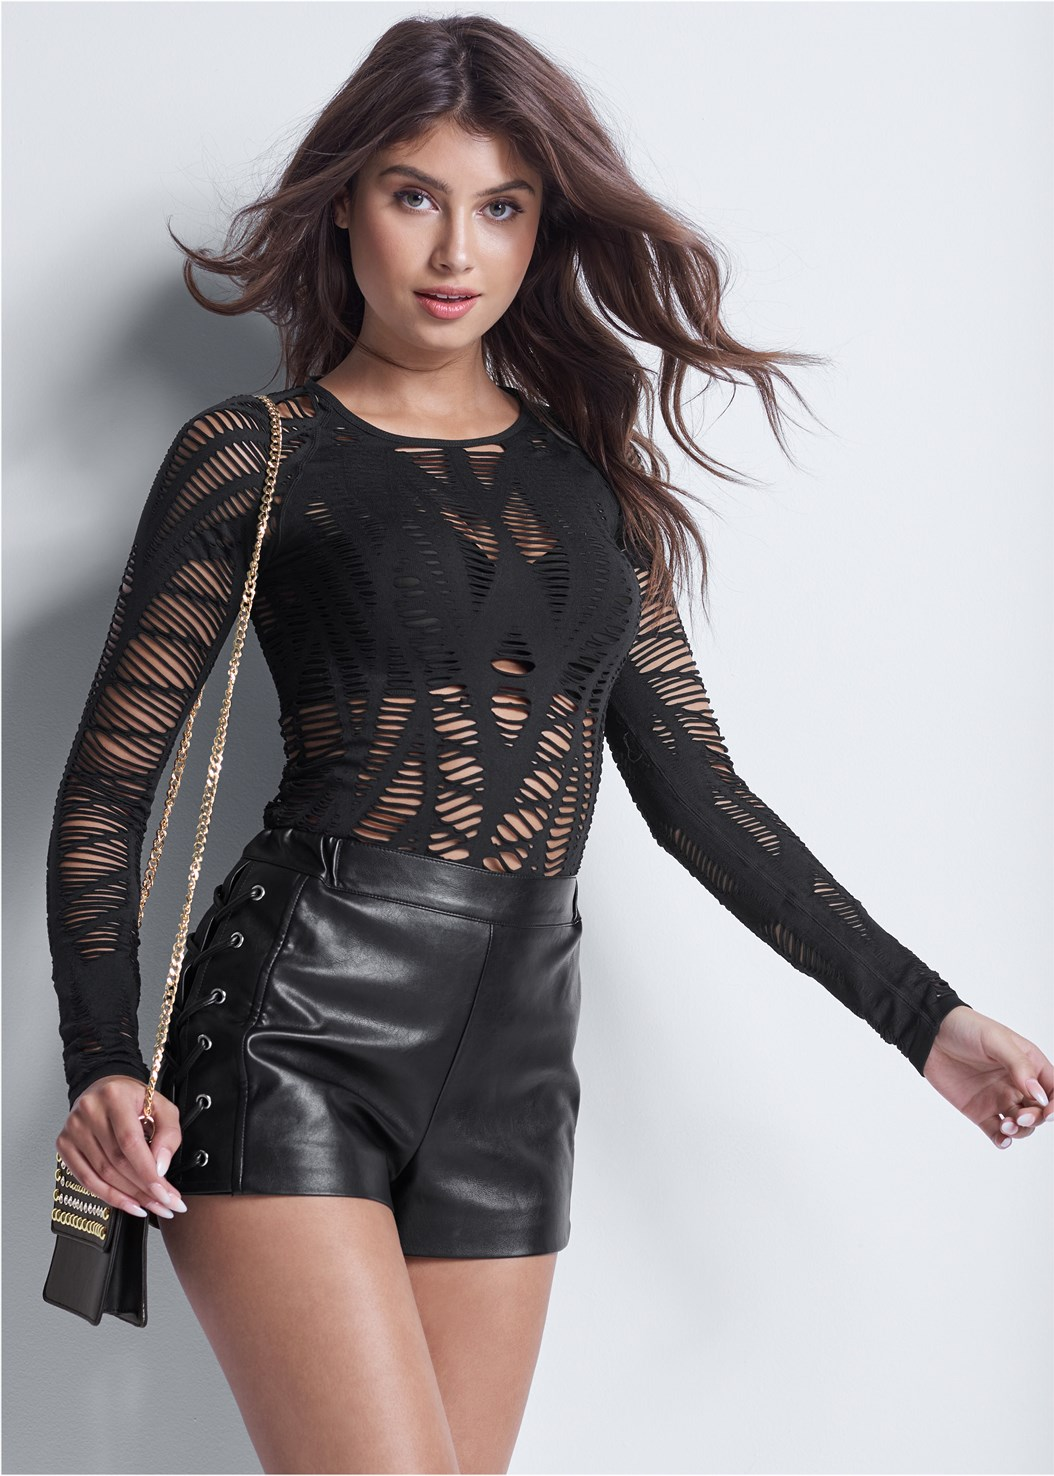 Faux Leather Lace Up Shorts,Seamless Cut Out Top,Buckle Detail Booties,Lurex Detail Scarf